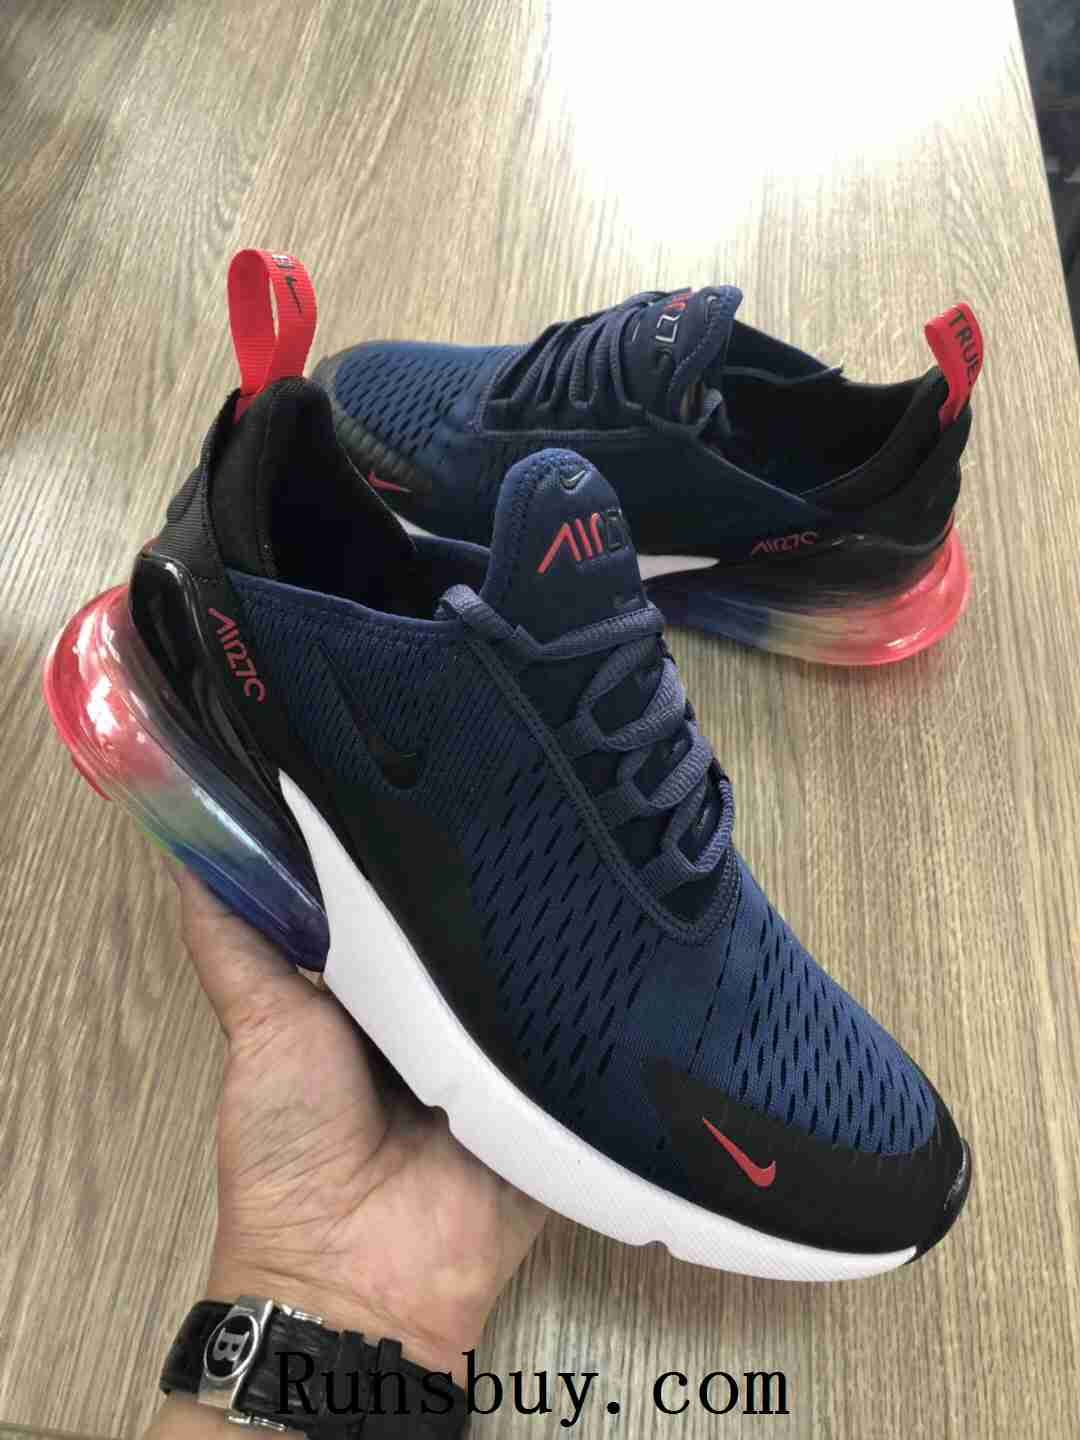 new styles 4ed73 db341 Nike Air Max 270 Betrue Blue Black Rainbow Women Men Running Shoes